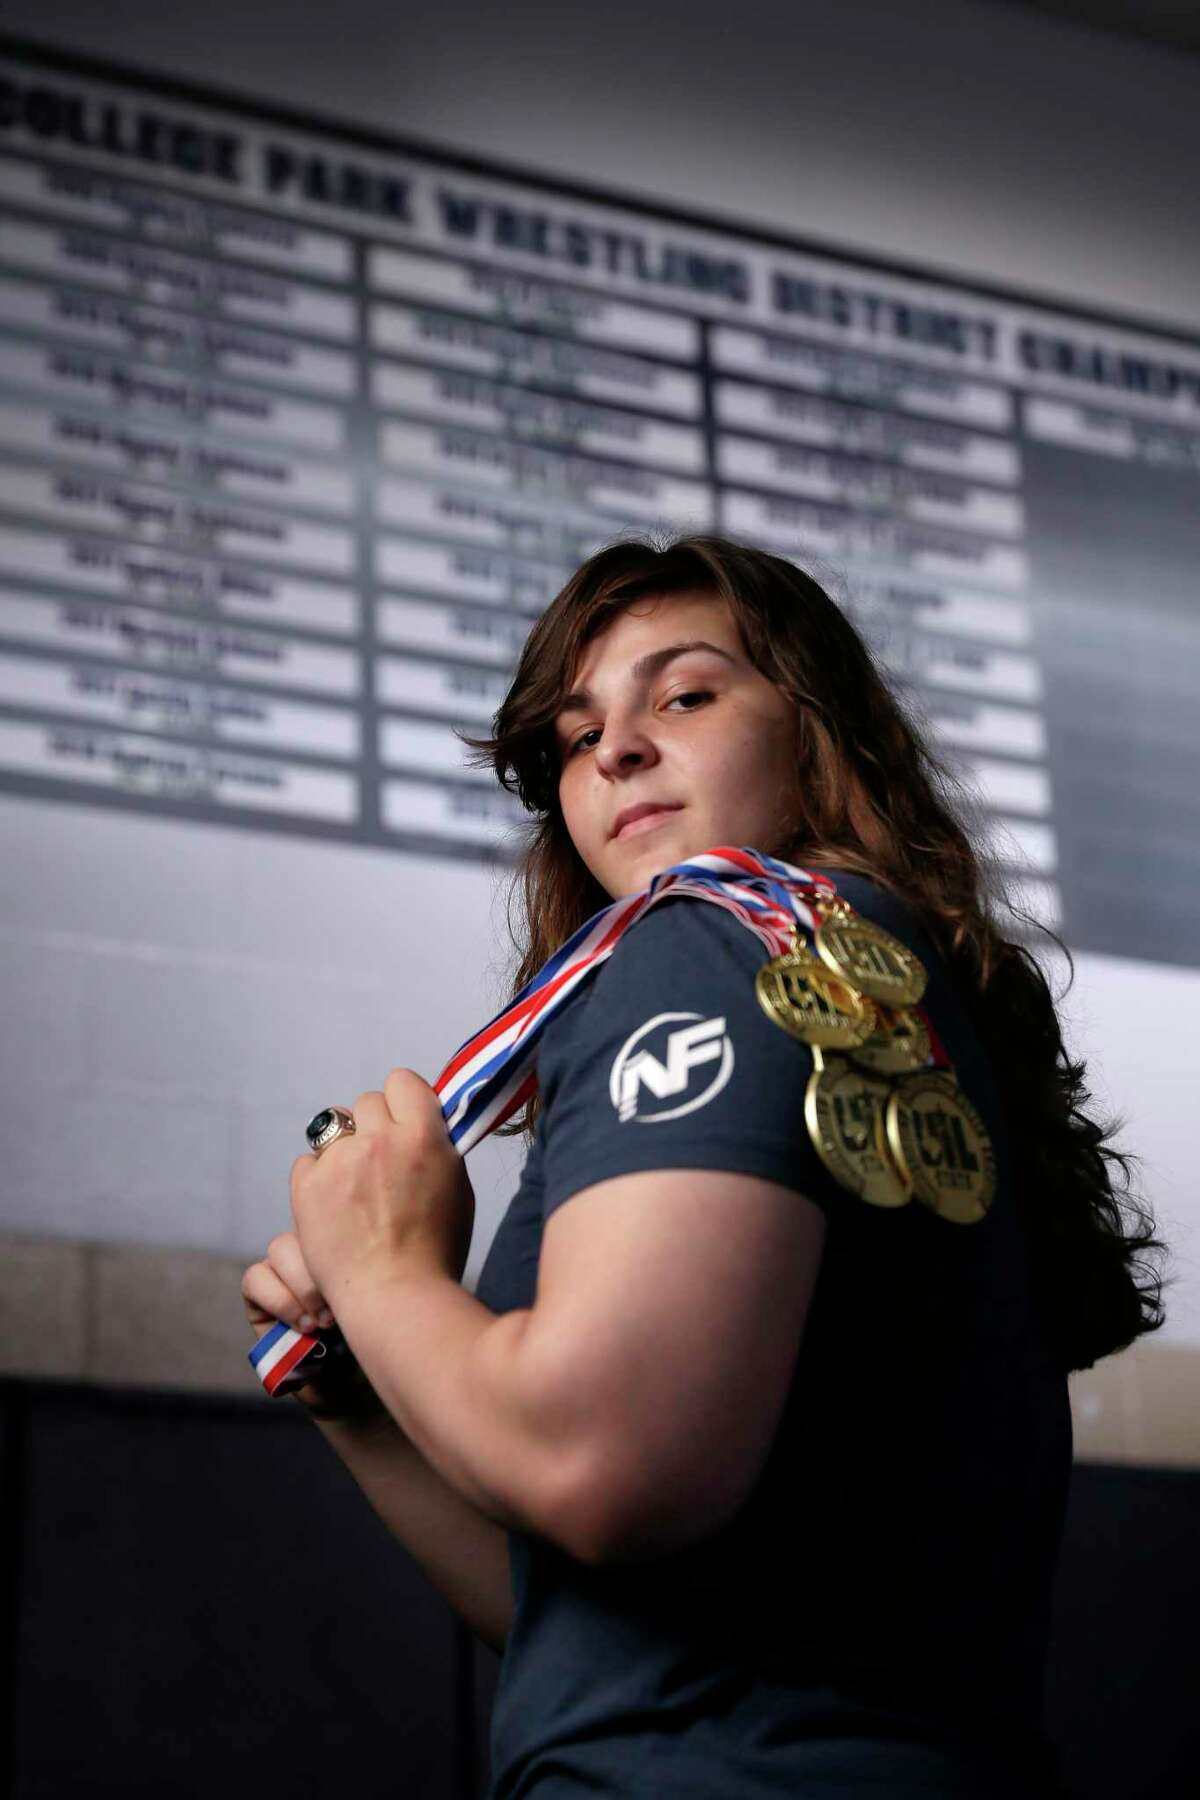 All Greater Houston Girls Wrestler of the Year Brittyn Corbishley of College Park High School in the wrestling room at the school Wednesday, May, 26, 2021 in The Woodlands, TX.